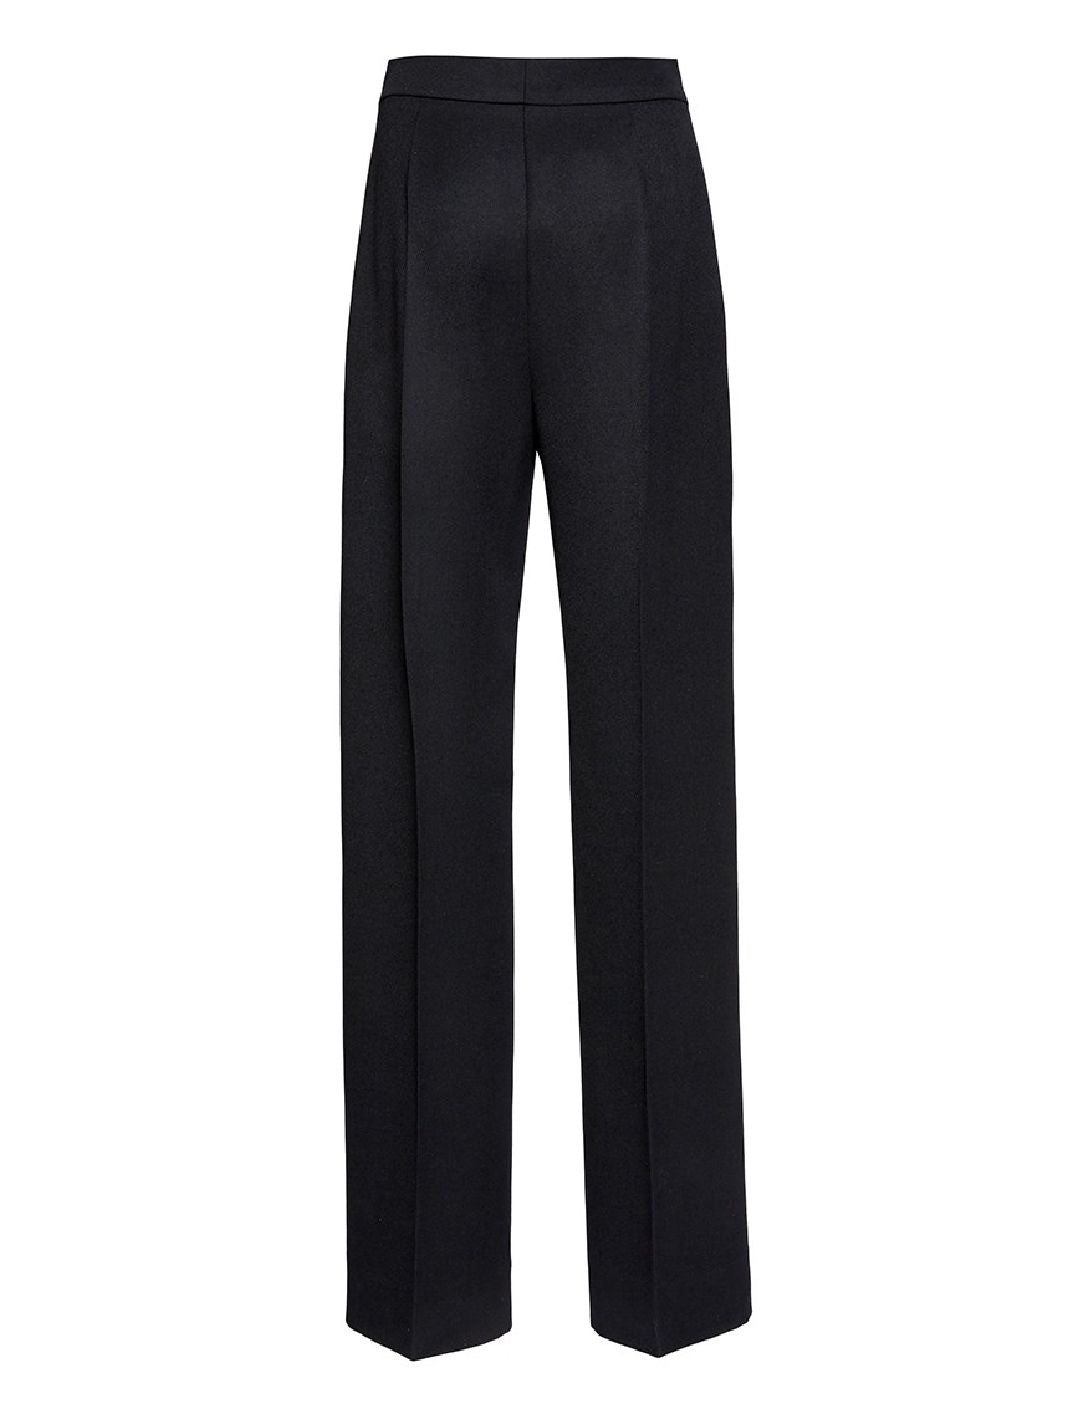 High Waisted Wide Legged Trousers - The Bobby Boga